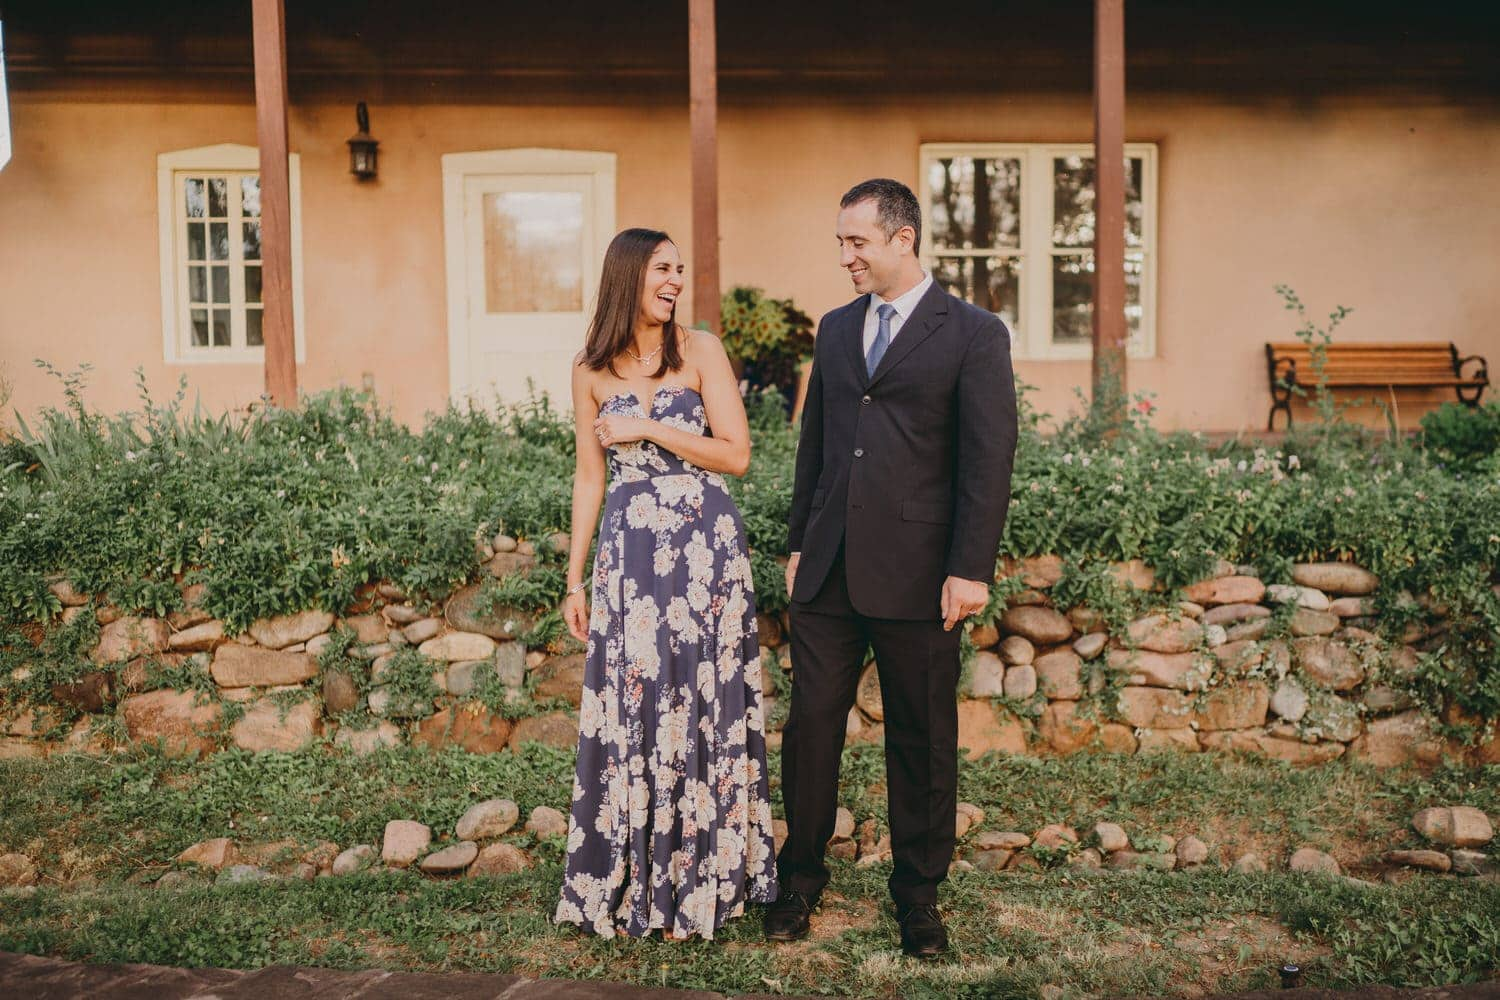 Newlyweds laughing and smiling after their destination Santa Fe wedding